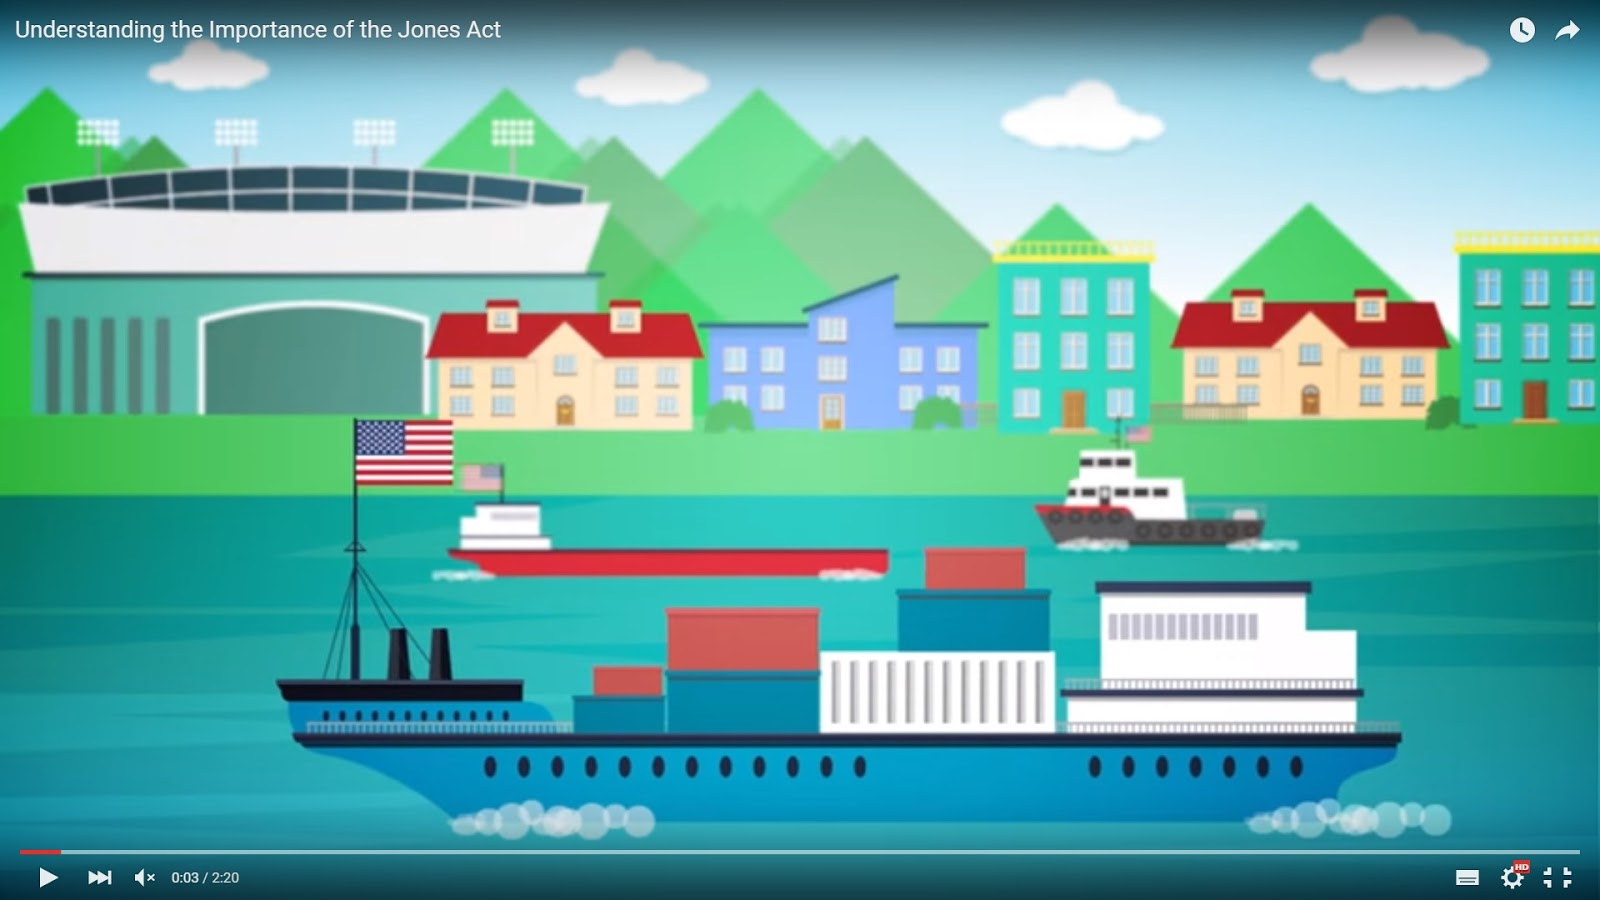 ANIMATION: Jones Act Explained